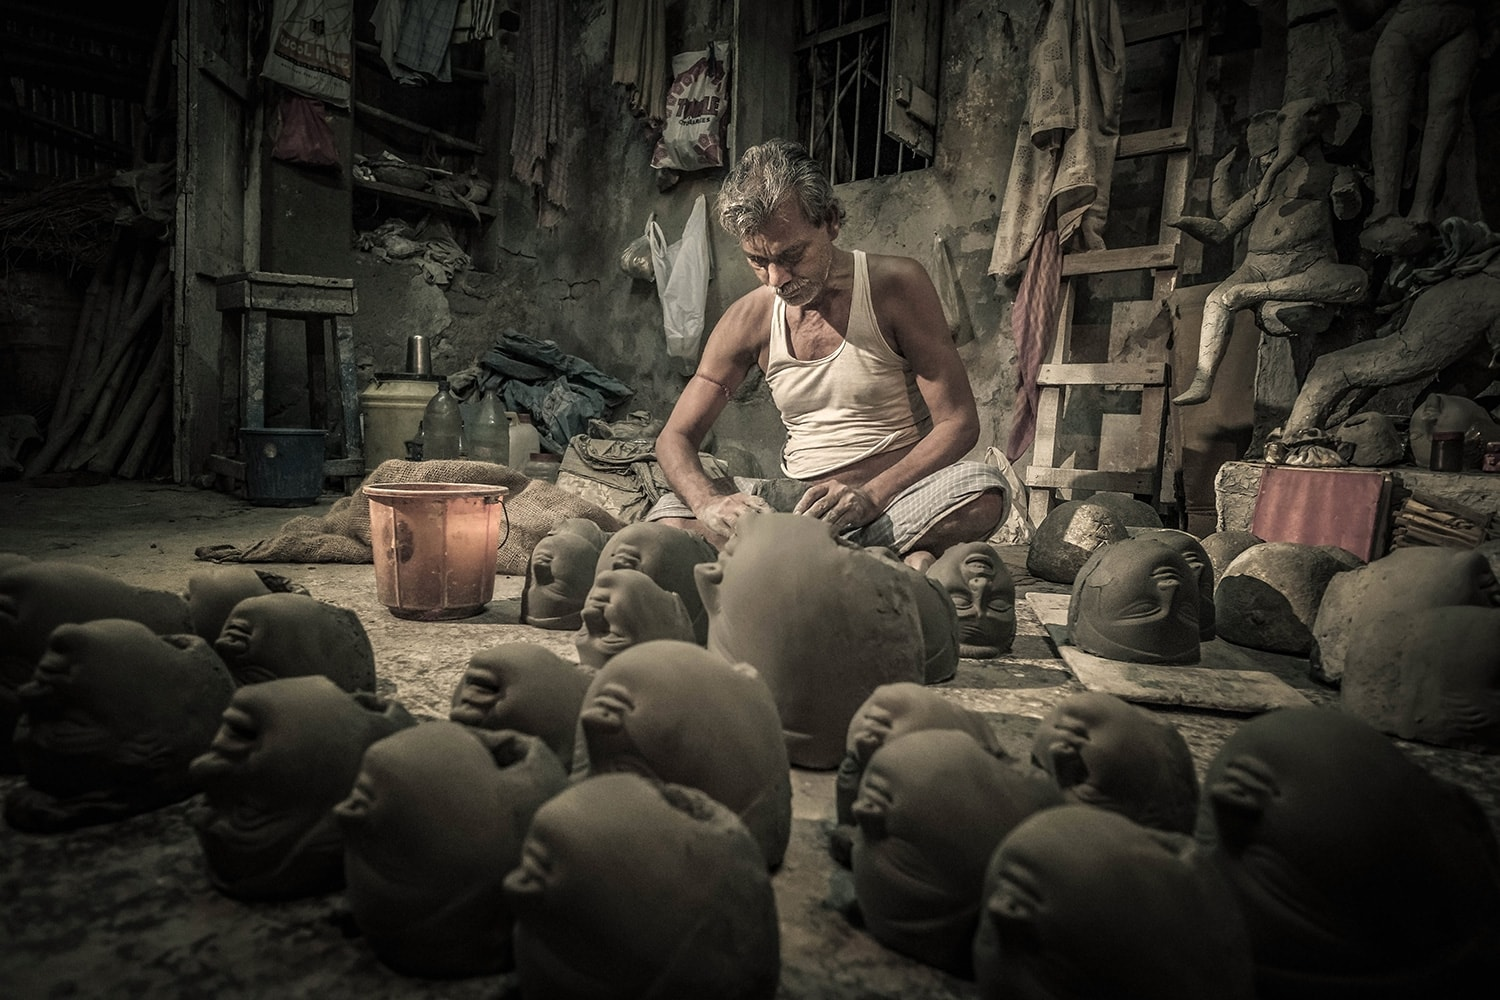 The artisans of Kalkuta are a great subject; I have spent many evenings just watching them work. -  Fujifilm X-Pro2  &  XF14mm  at F4, 4000ISO, 125th